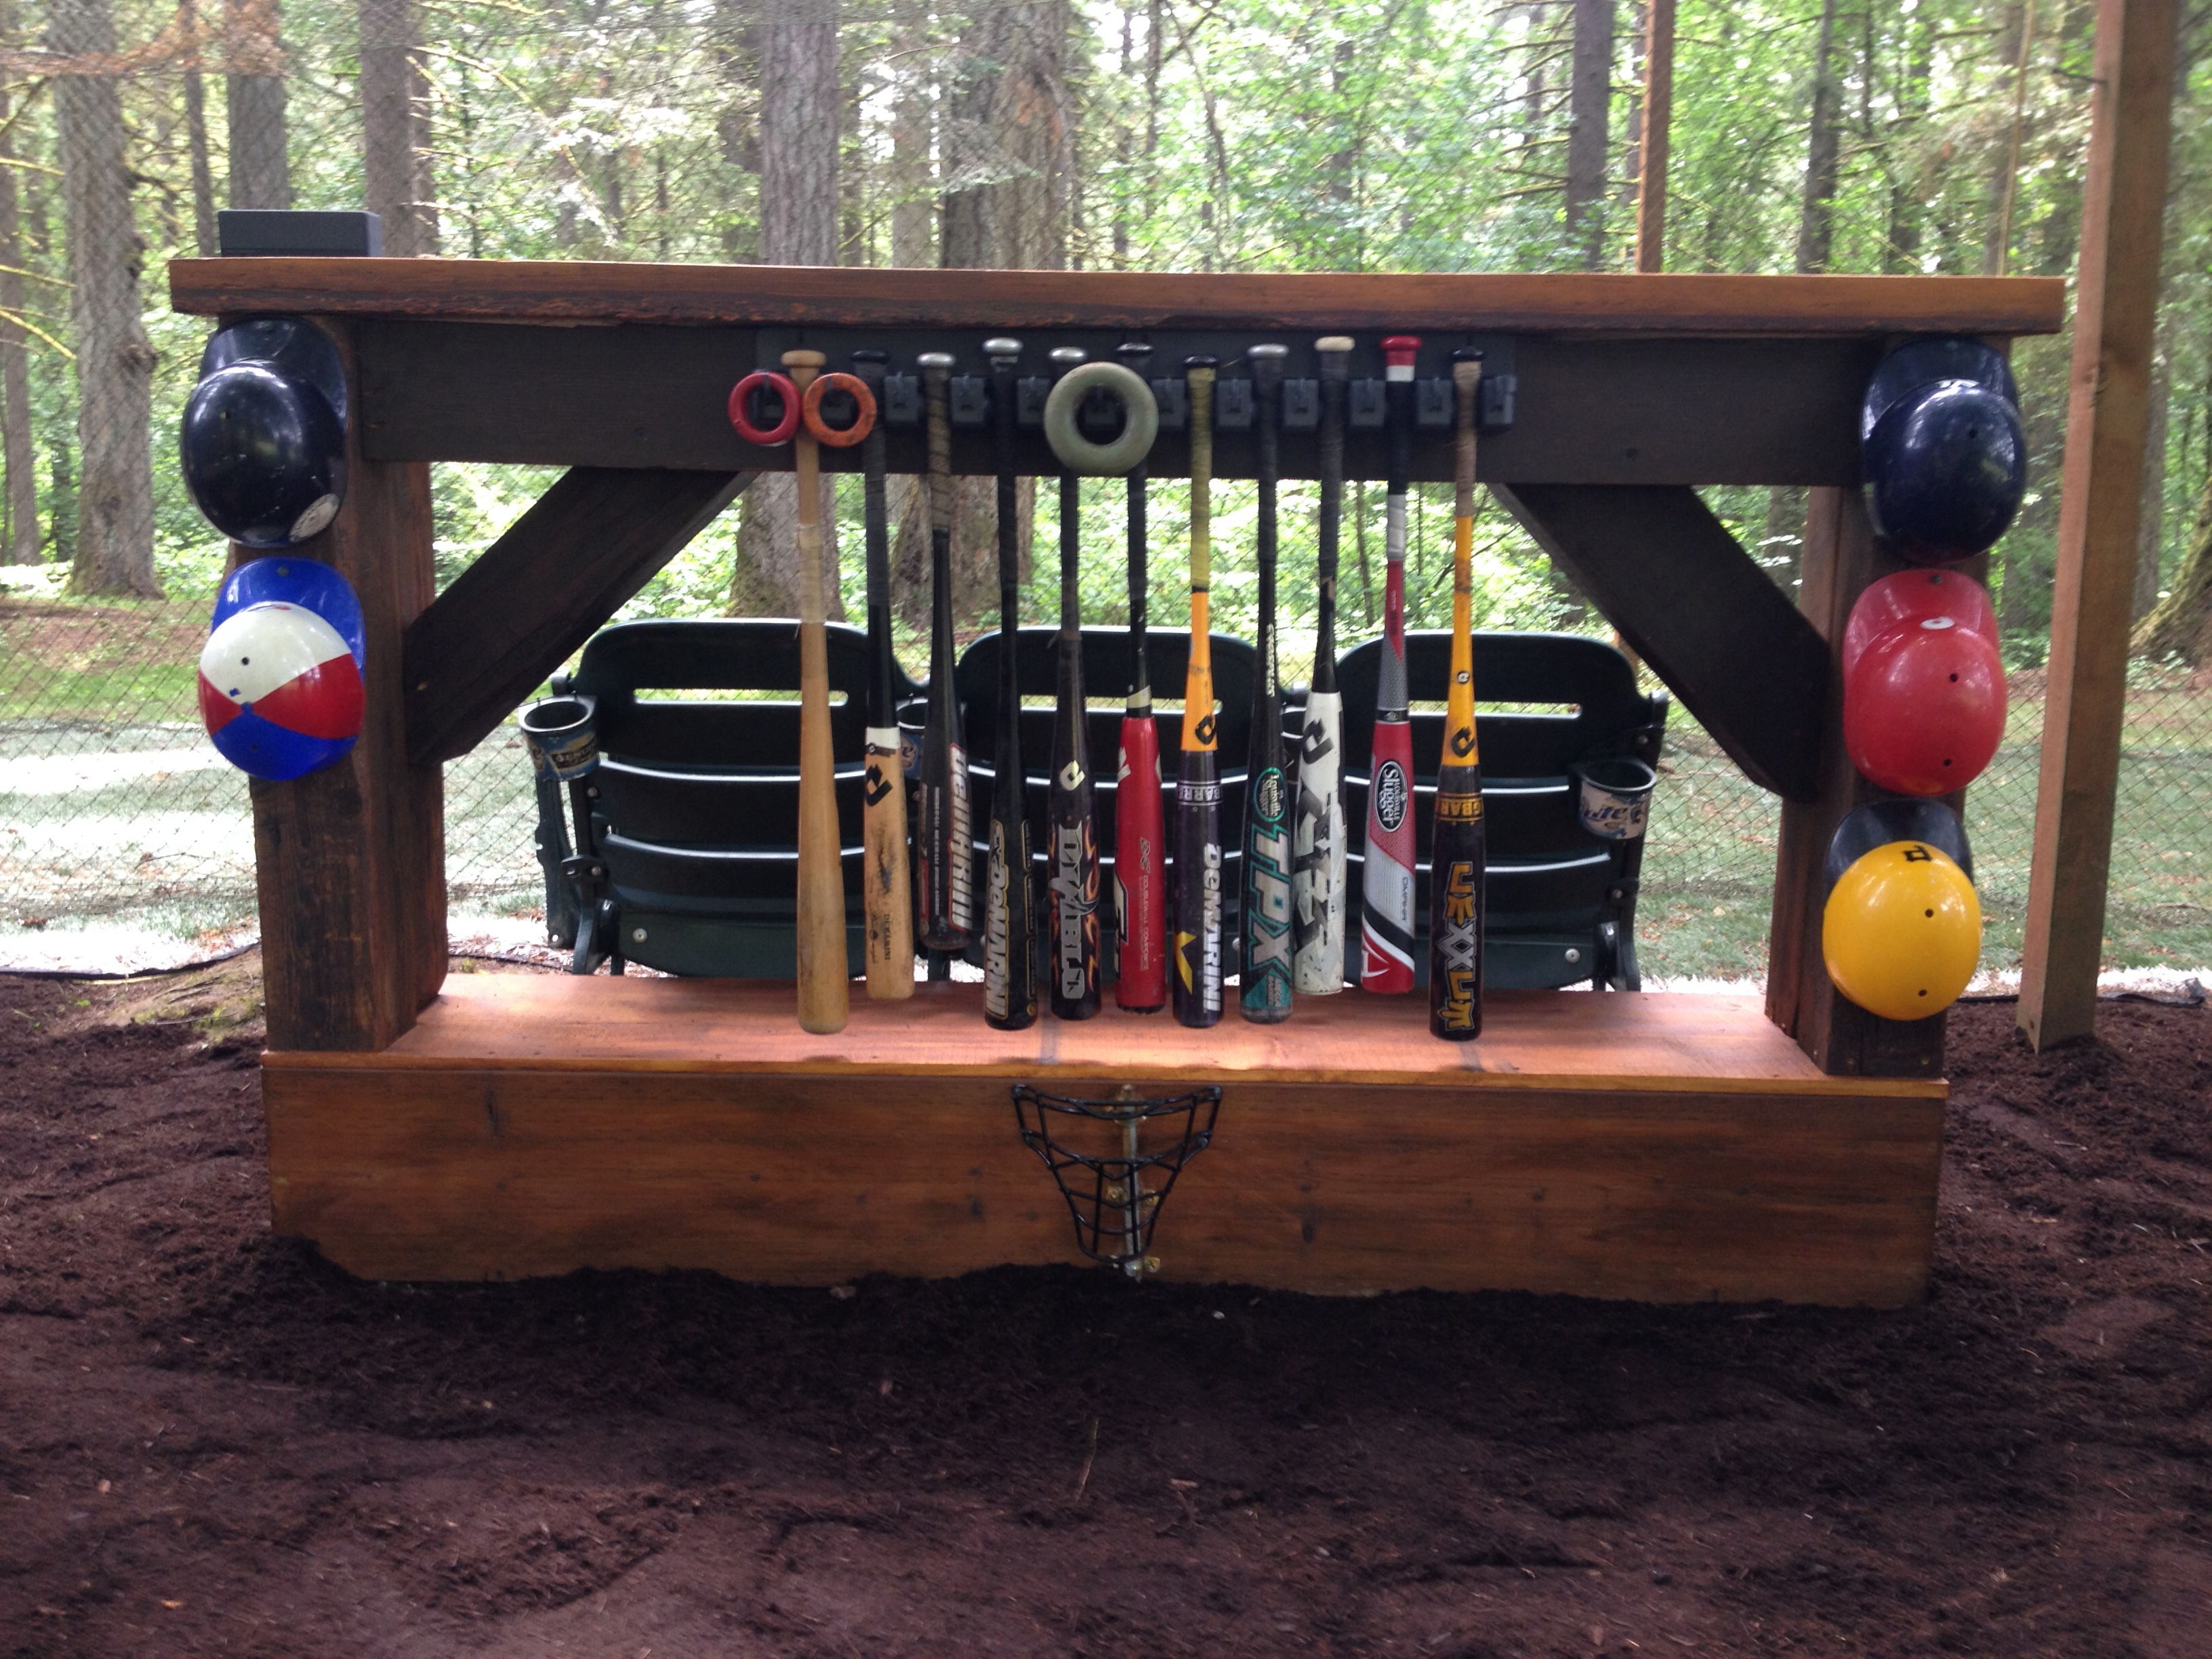 backyard baseball bat rack bar and stadium seats for backyard